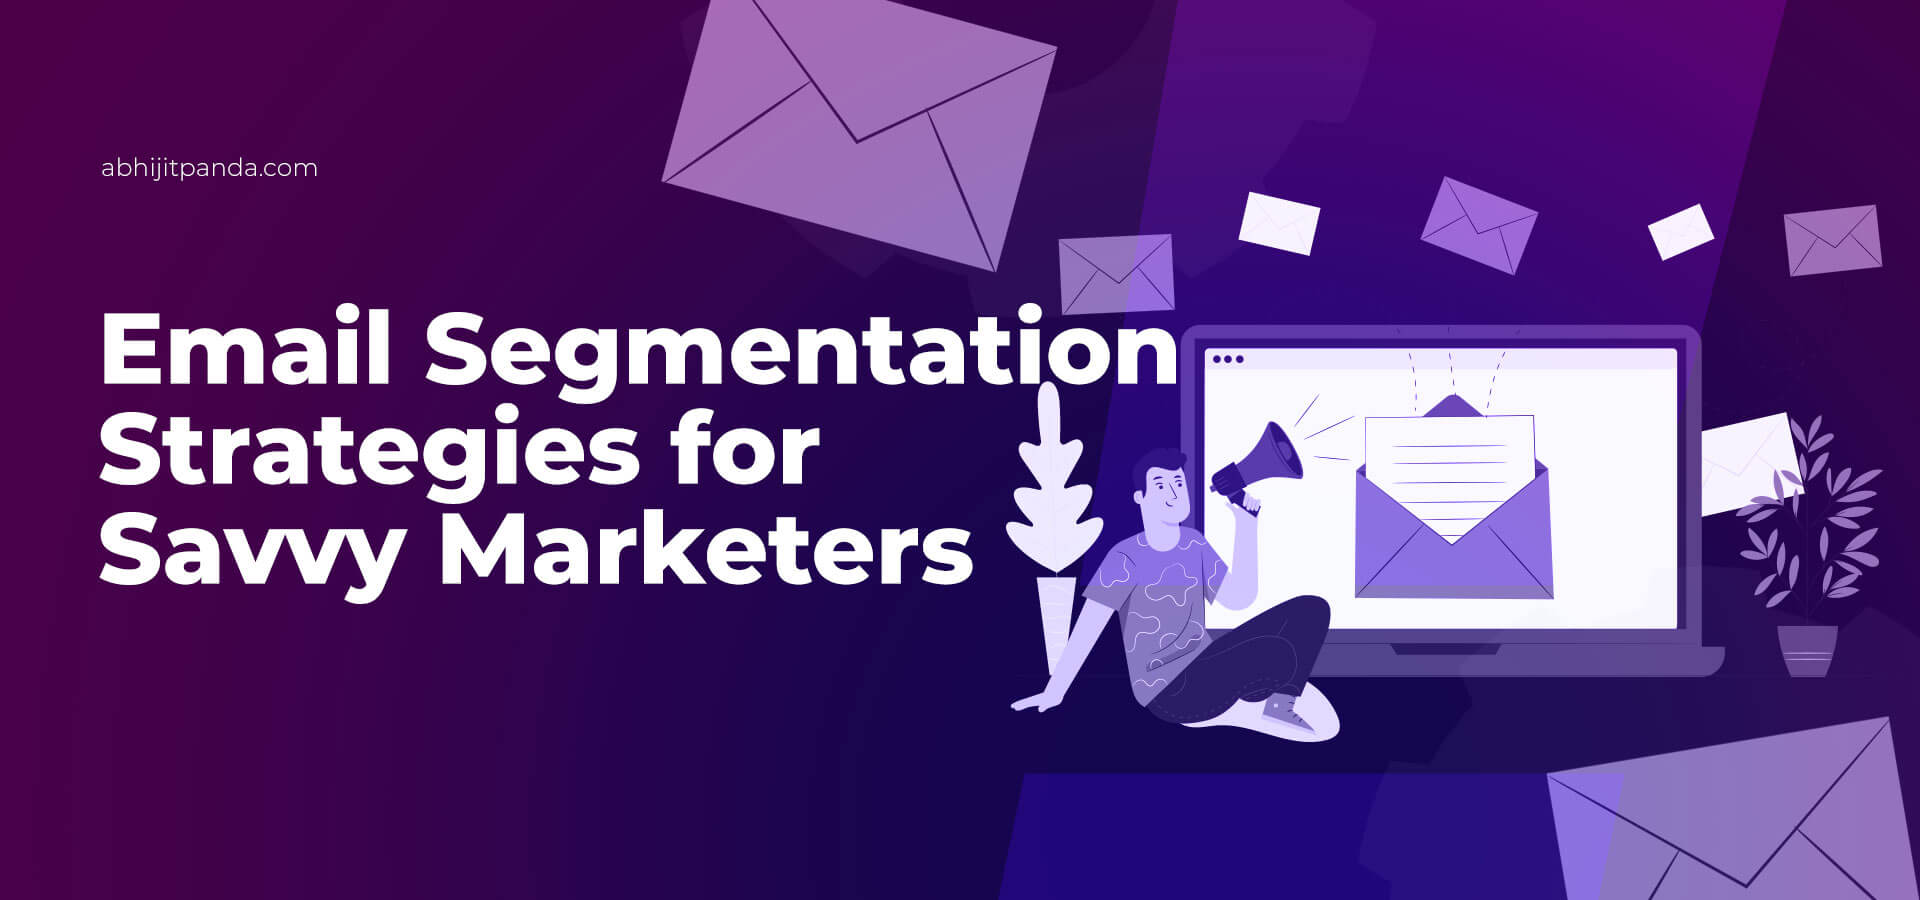 Email Segmentation Strategies for Savvy Marketers